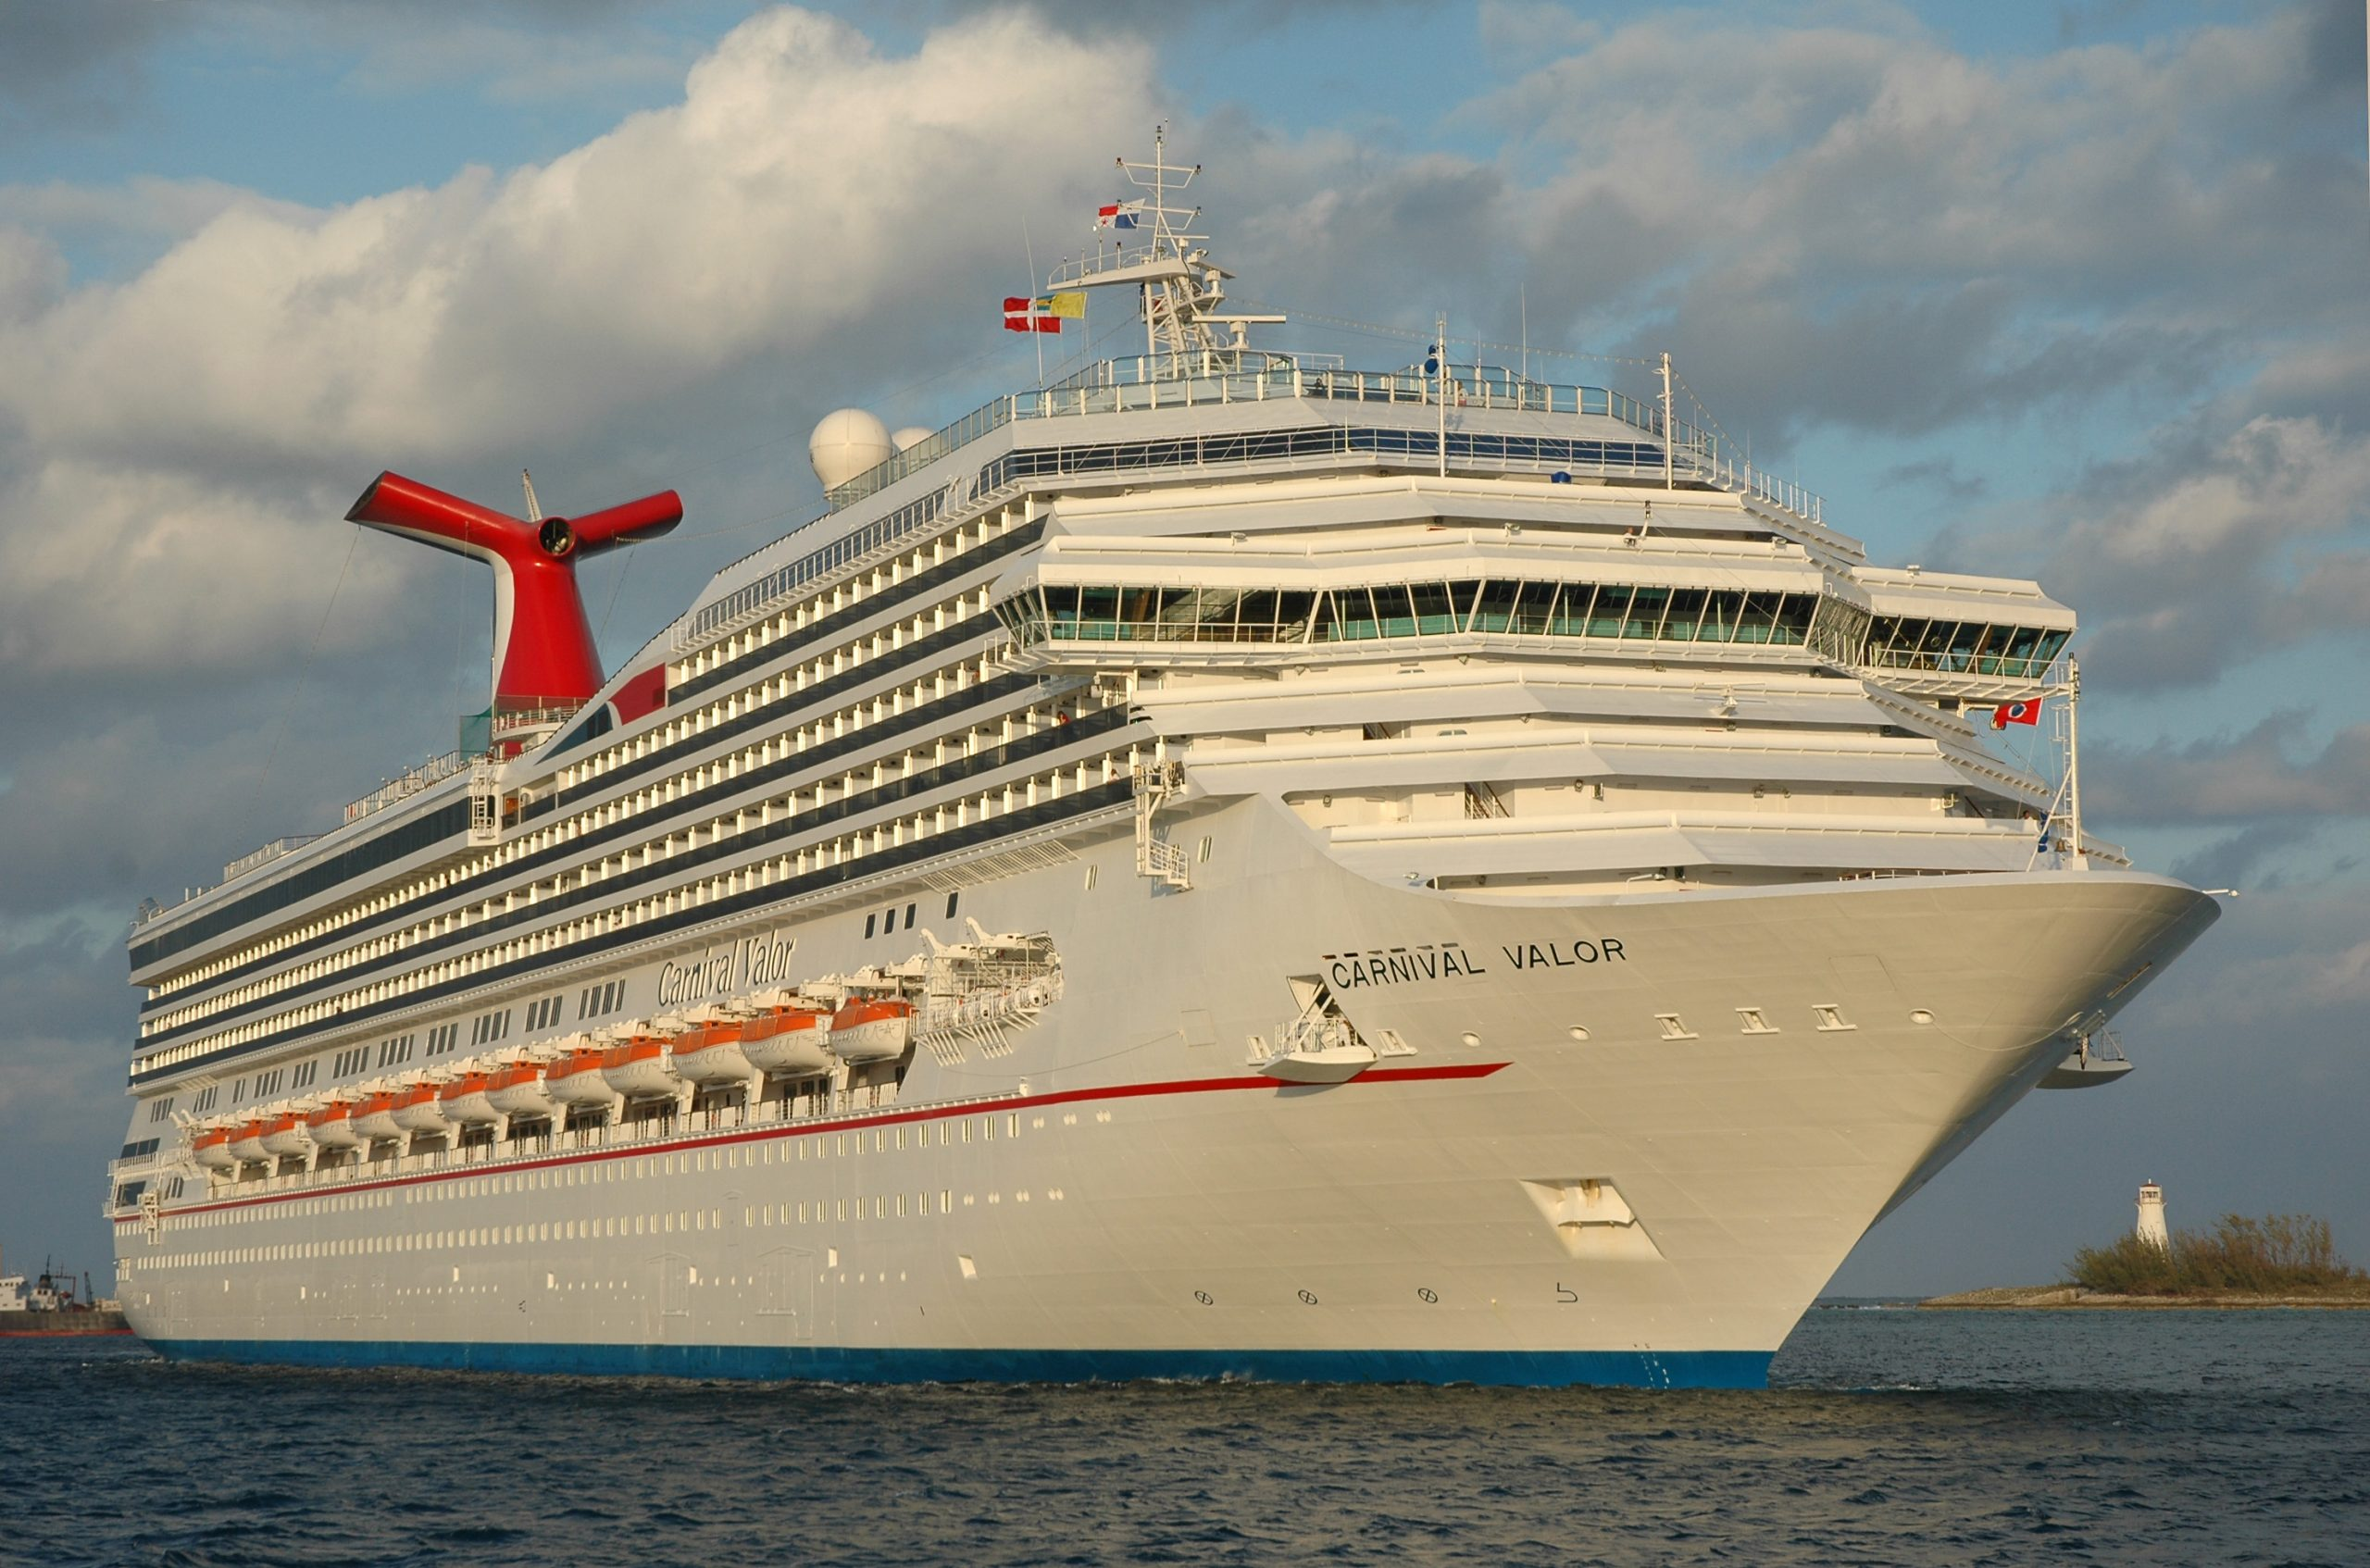 Carnival Valor to Offer Two Trans-Atlantic Crossings in 2021